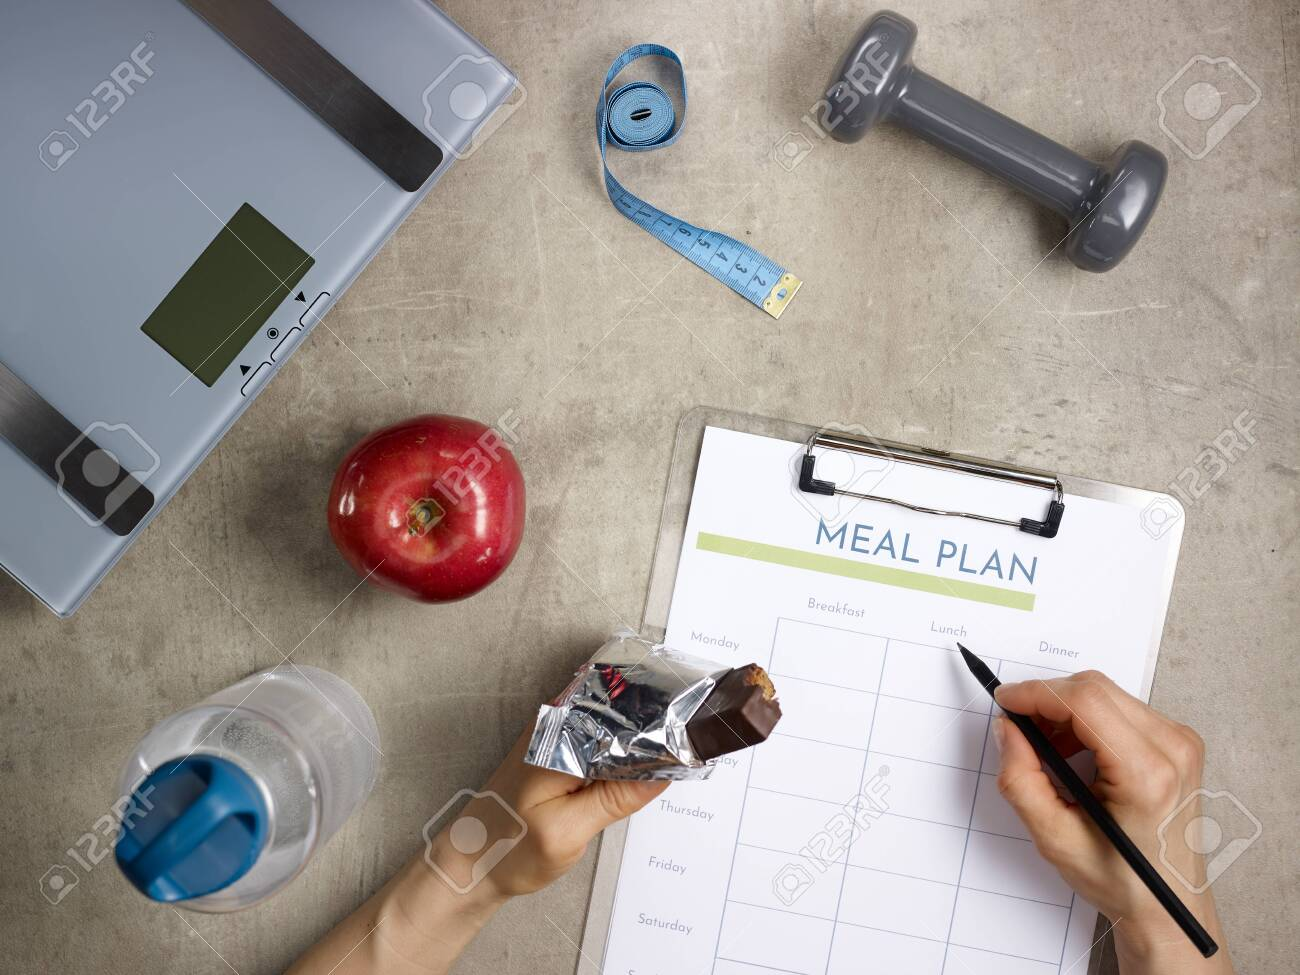 Closeup on weight scales, grey dumbbell, red apple, bottle of water, tape measure laying on the floor and female hands with bitten raw protein bar filling meal plan. - 122620568